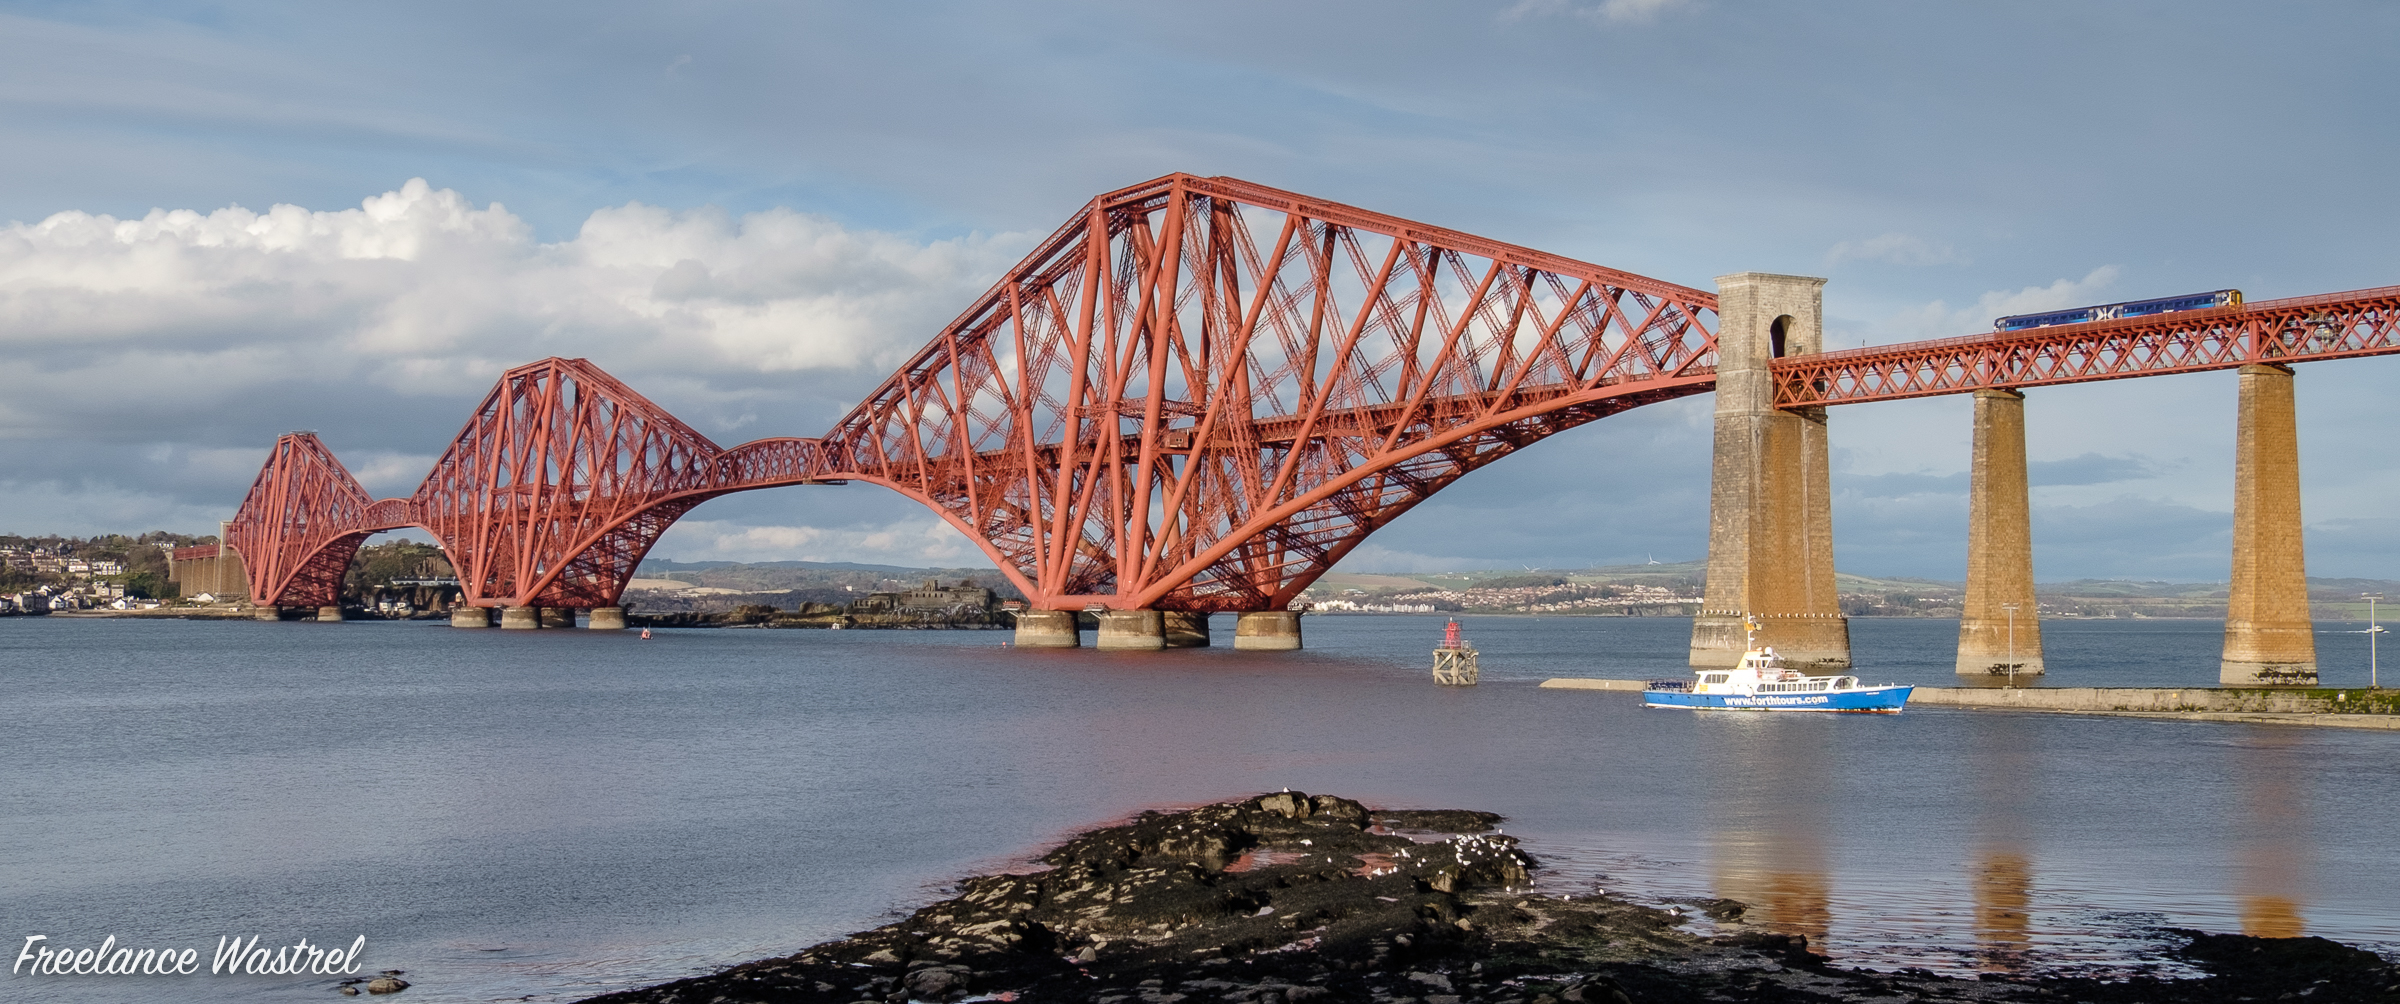 The Forth Bridge, October 2018